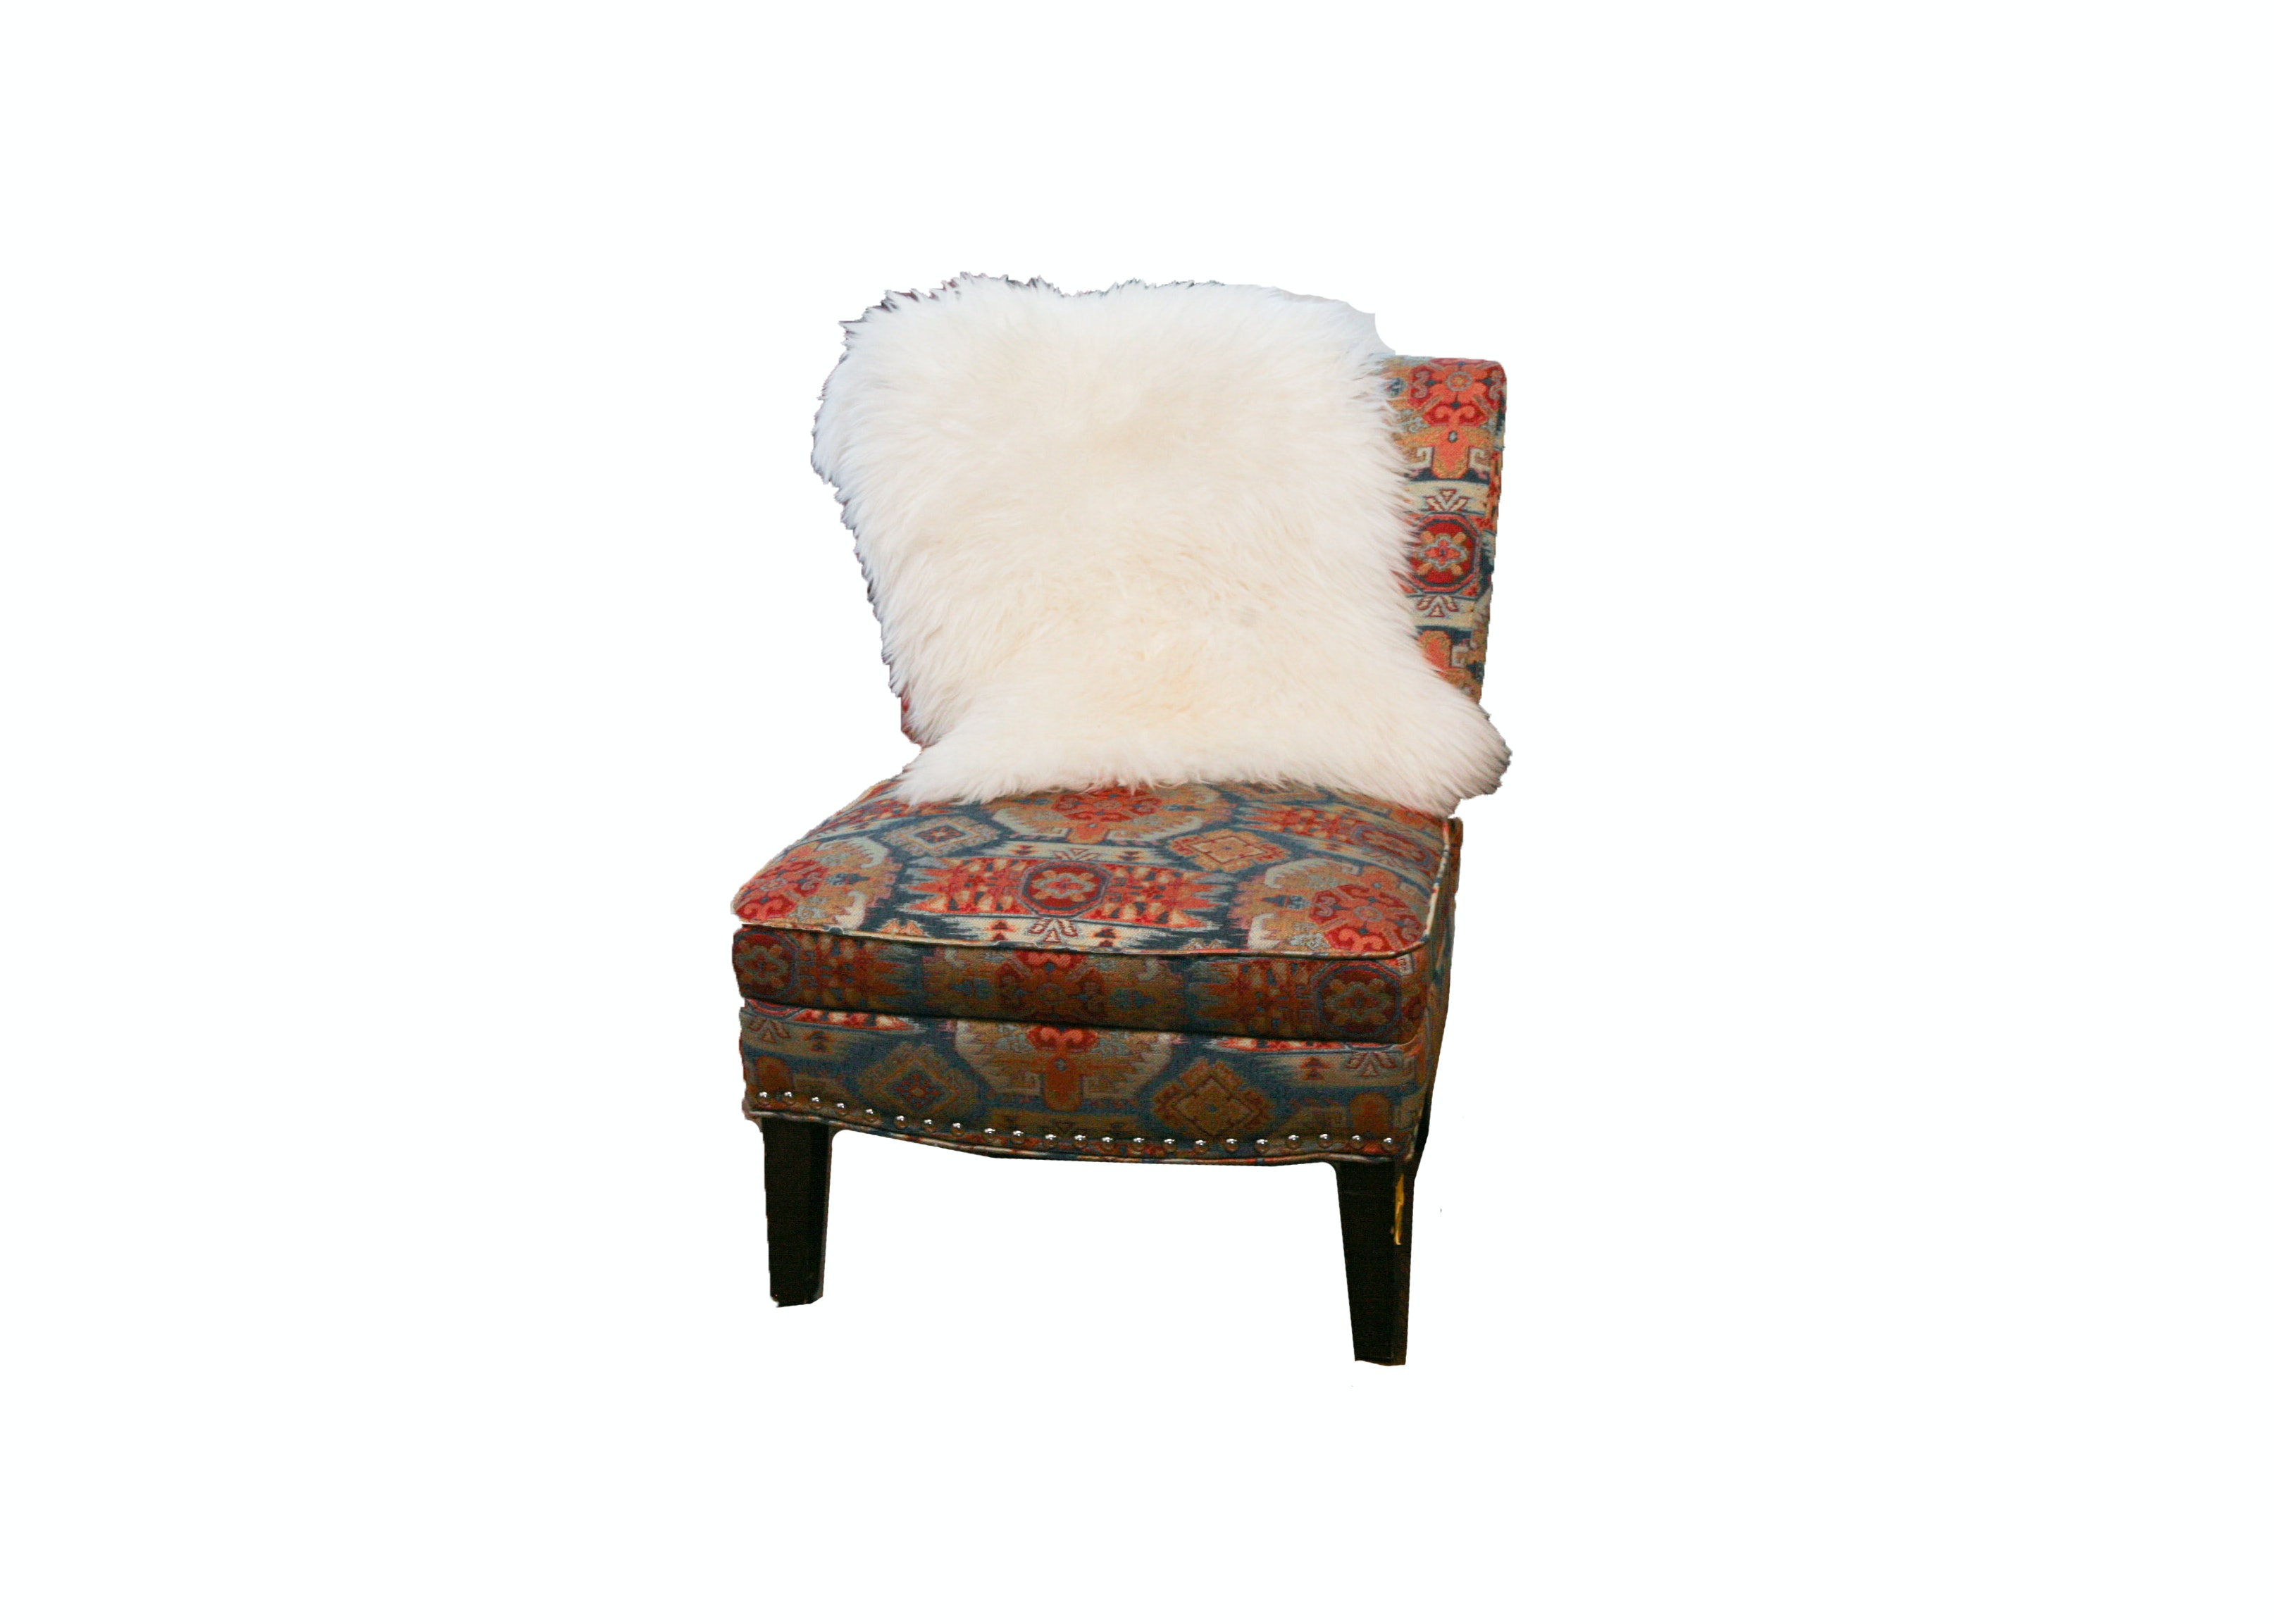 Colorful Accent Chair with Faux Fur Throw